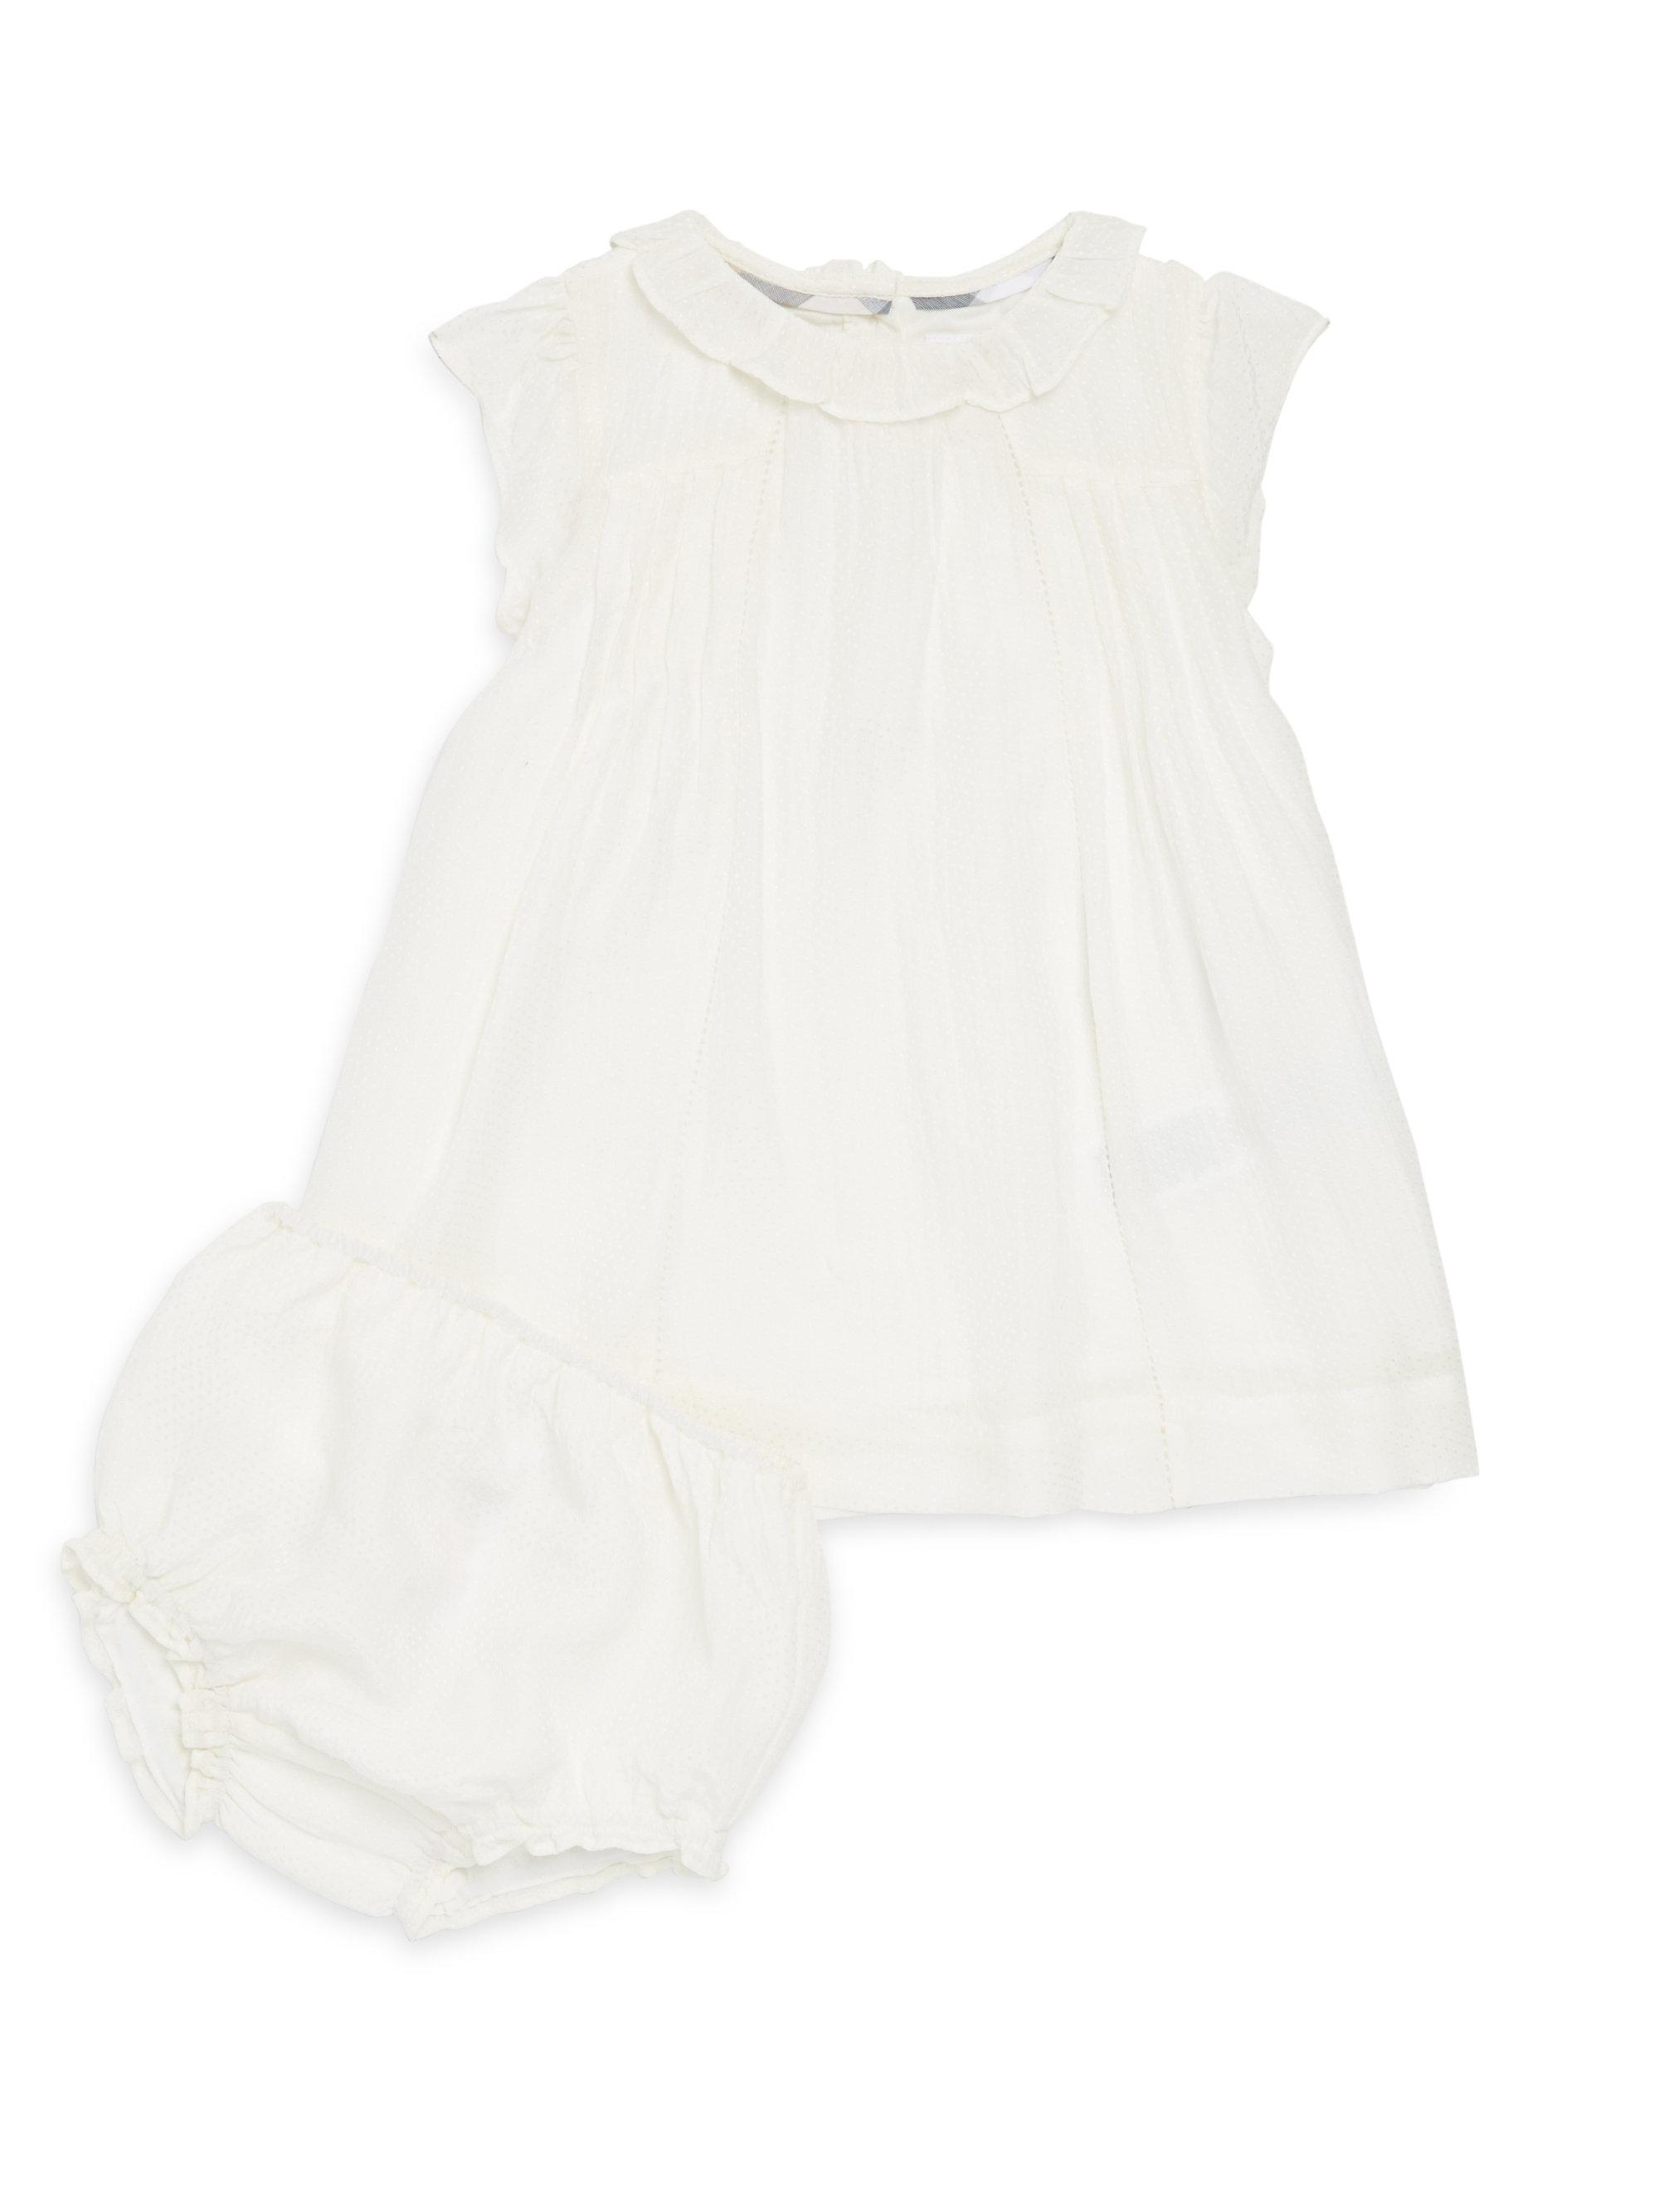 Lyst Burberry Baby Girl s Cressy Dress And Bloomers Set in White